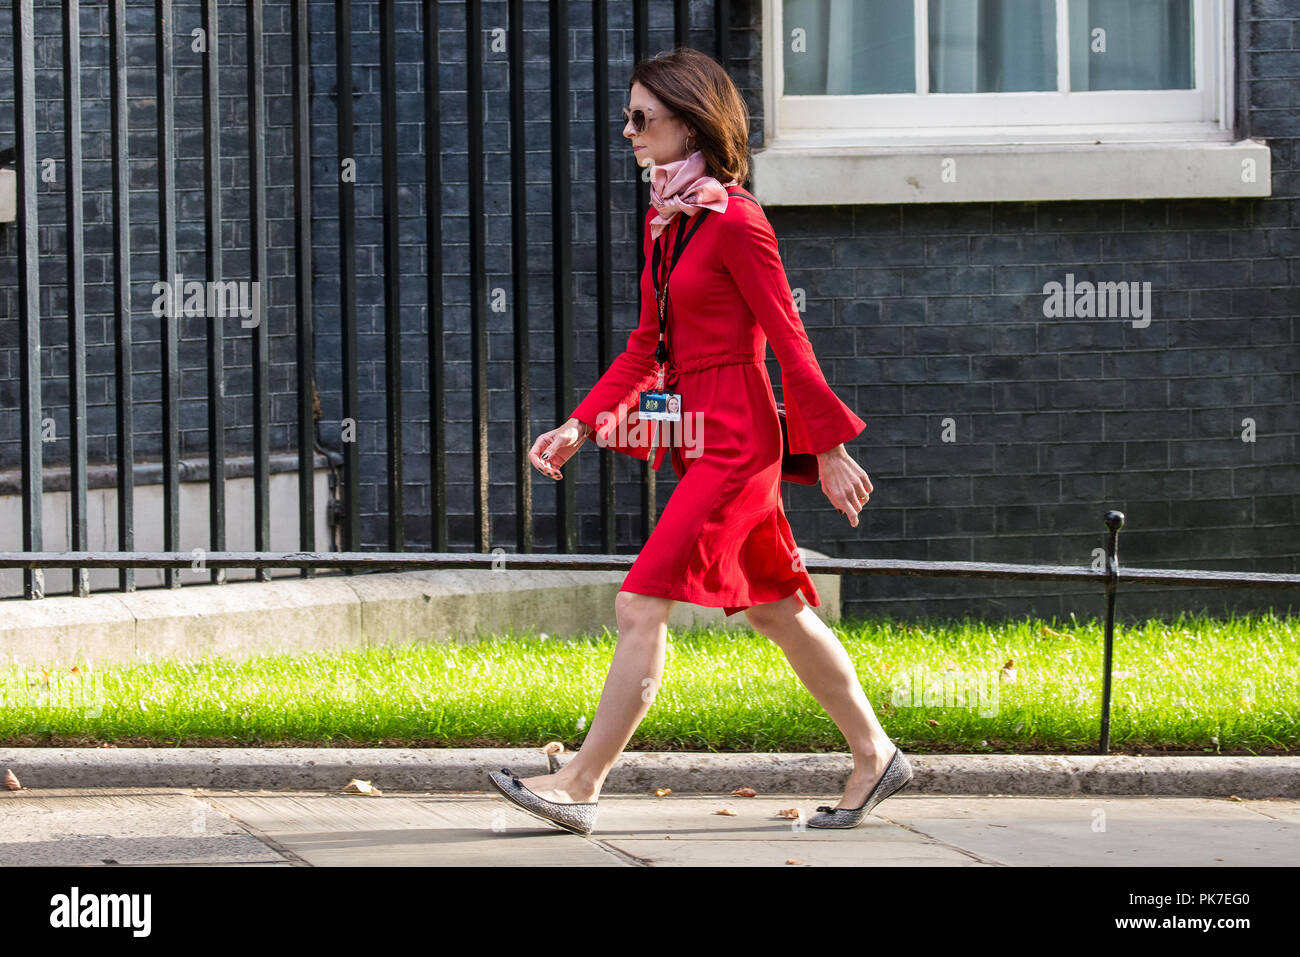 London, UK. 11th September, 2018. Seema Kennedy MP, Parliamentary Private Secretary to the Prime Minister, arrives at 10 Downing Street for a Cabinet meeting. Credit: Mark Kerrison/Alamy Live News - Stock Image